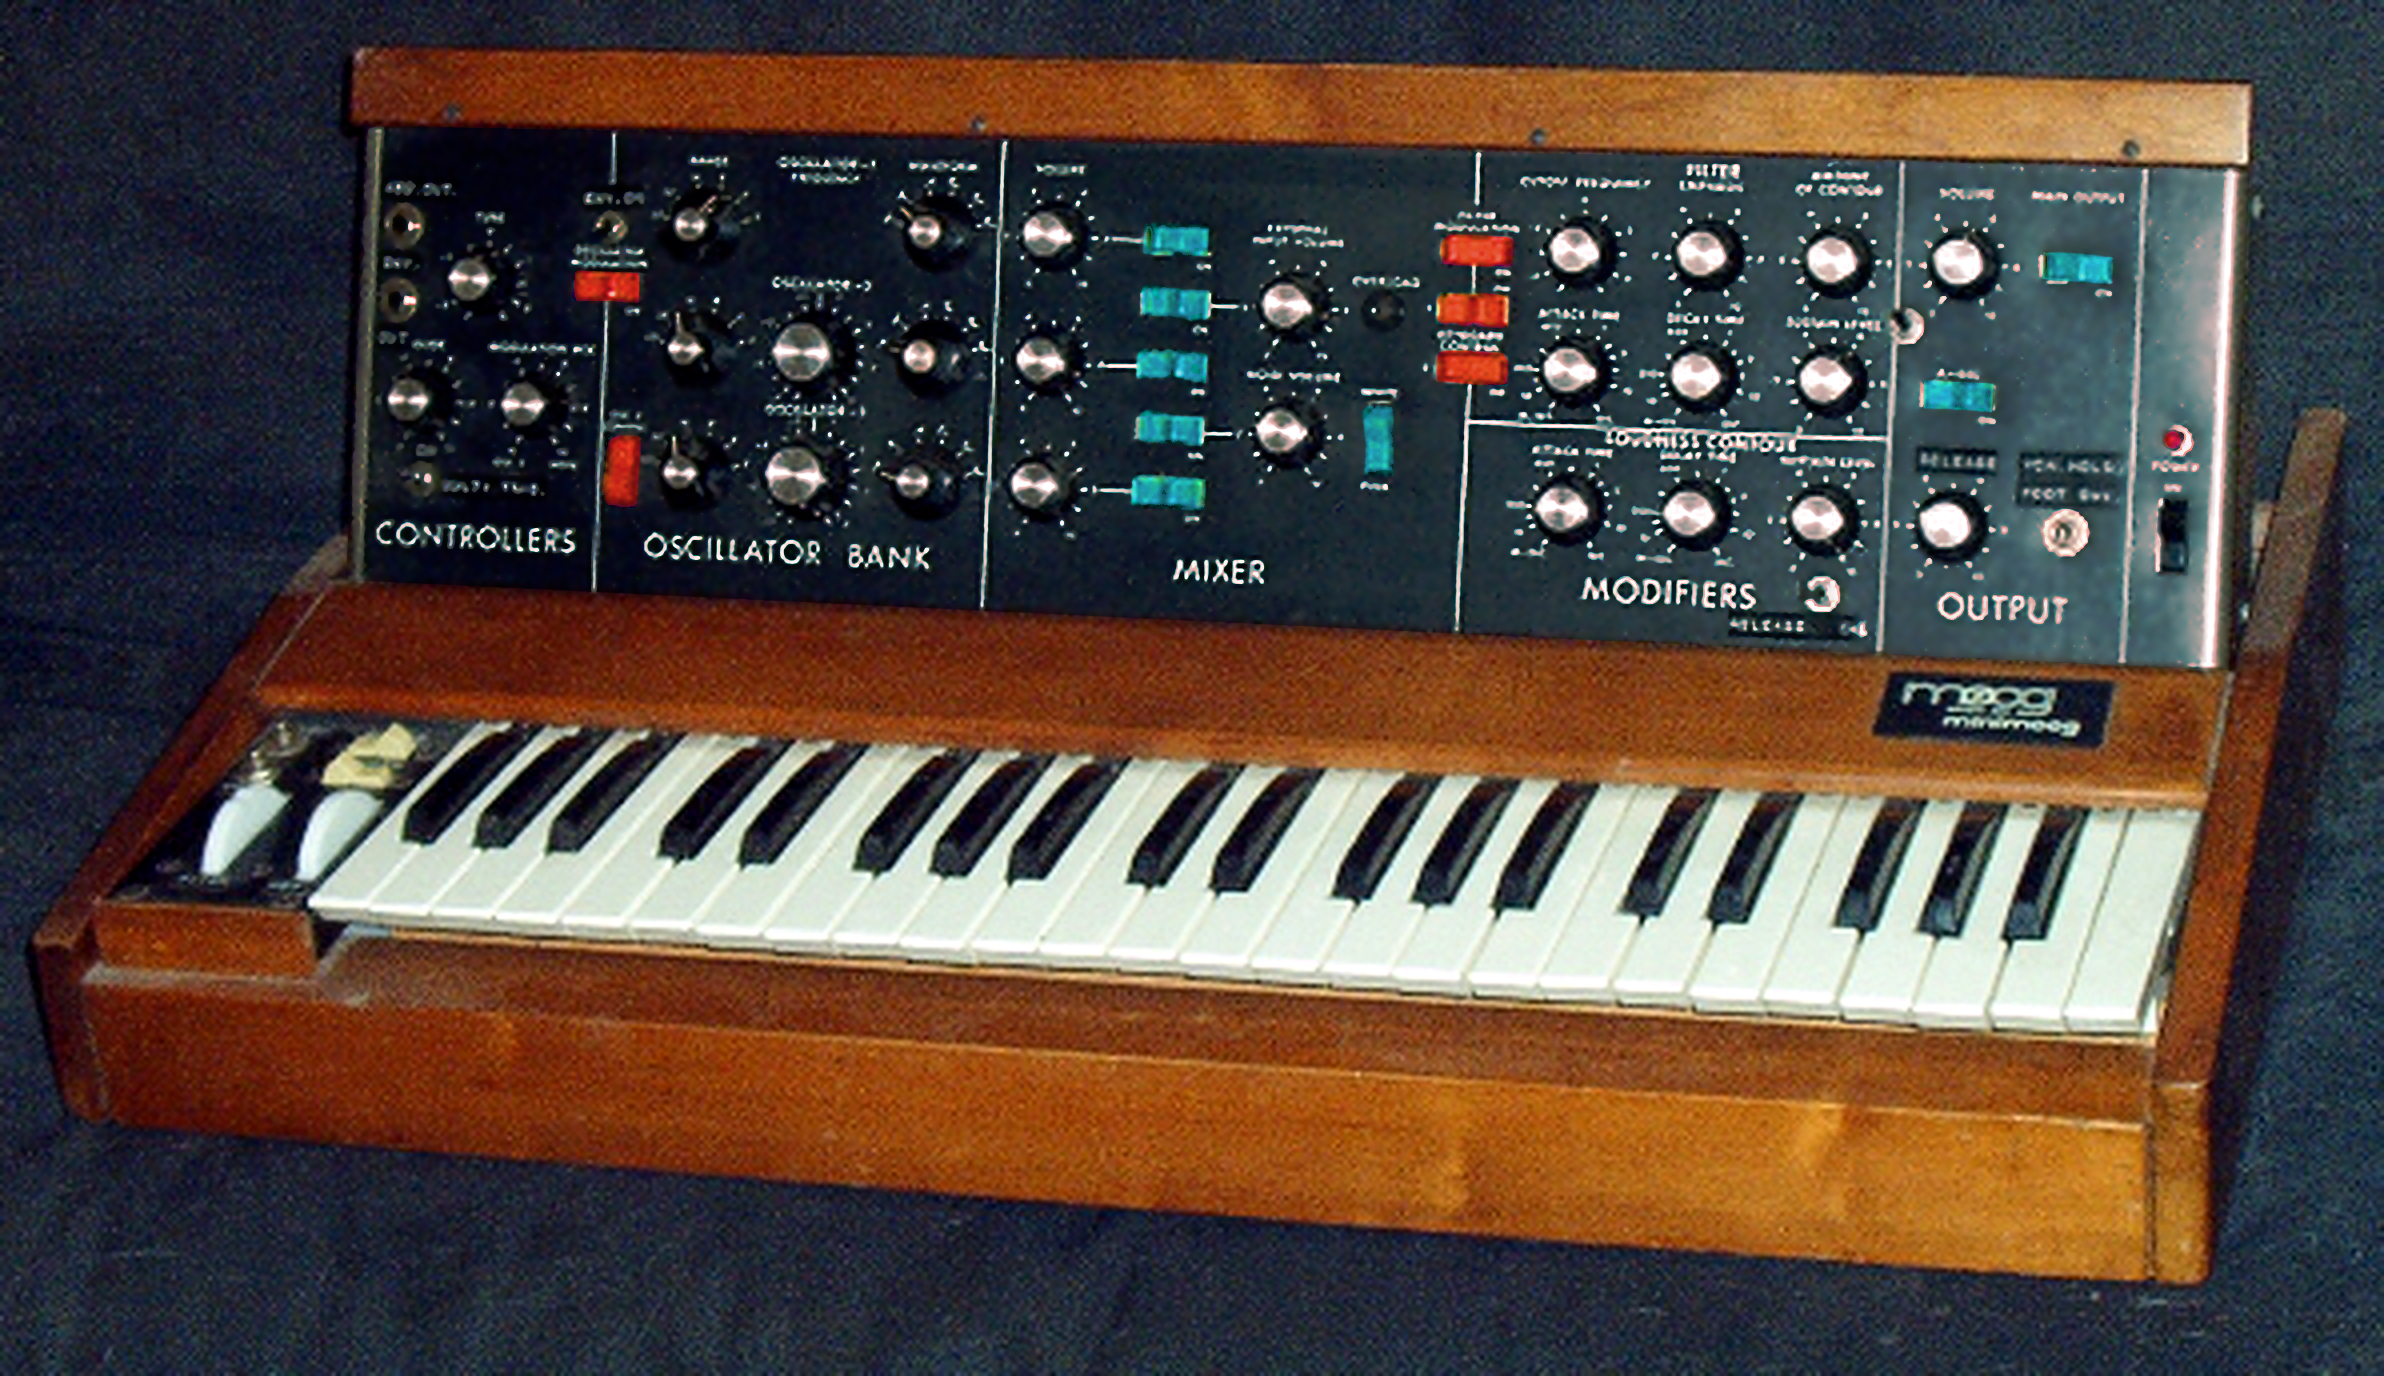 original Minimoog - photo: Krash